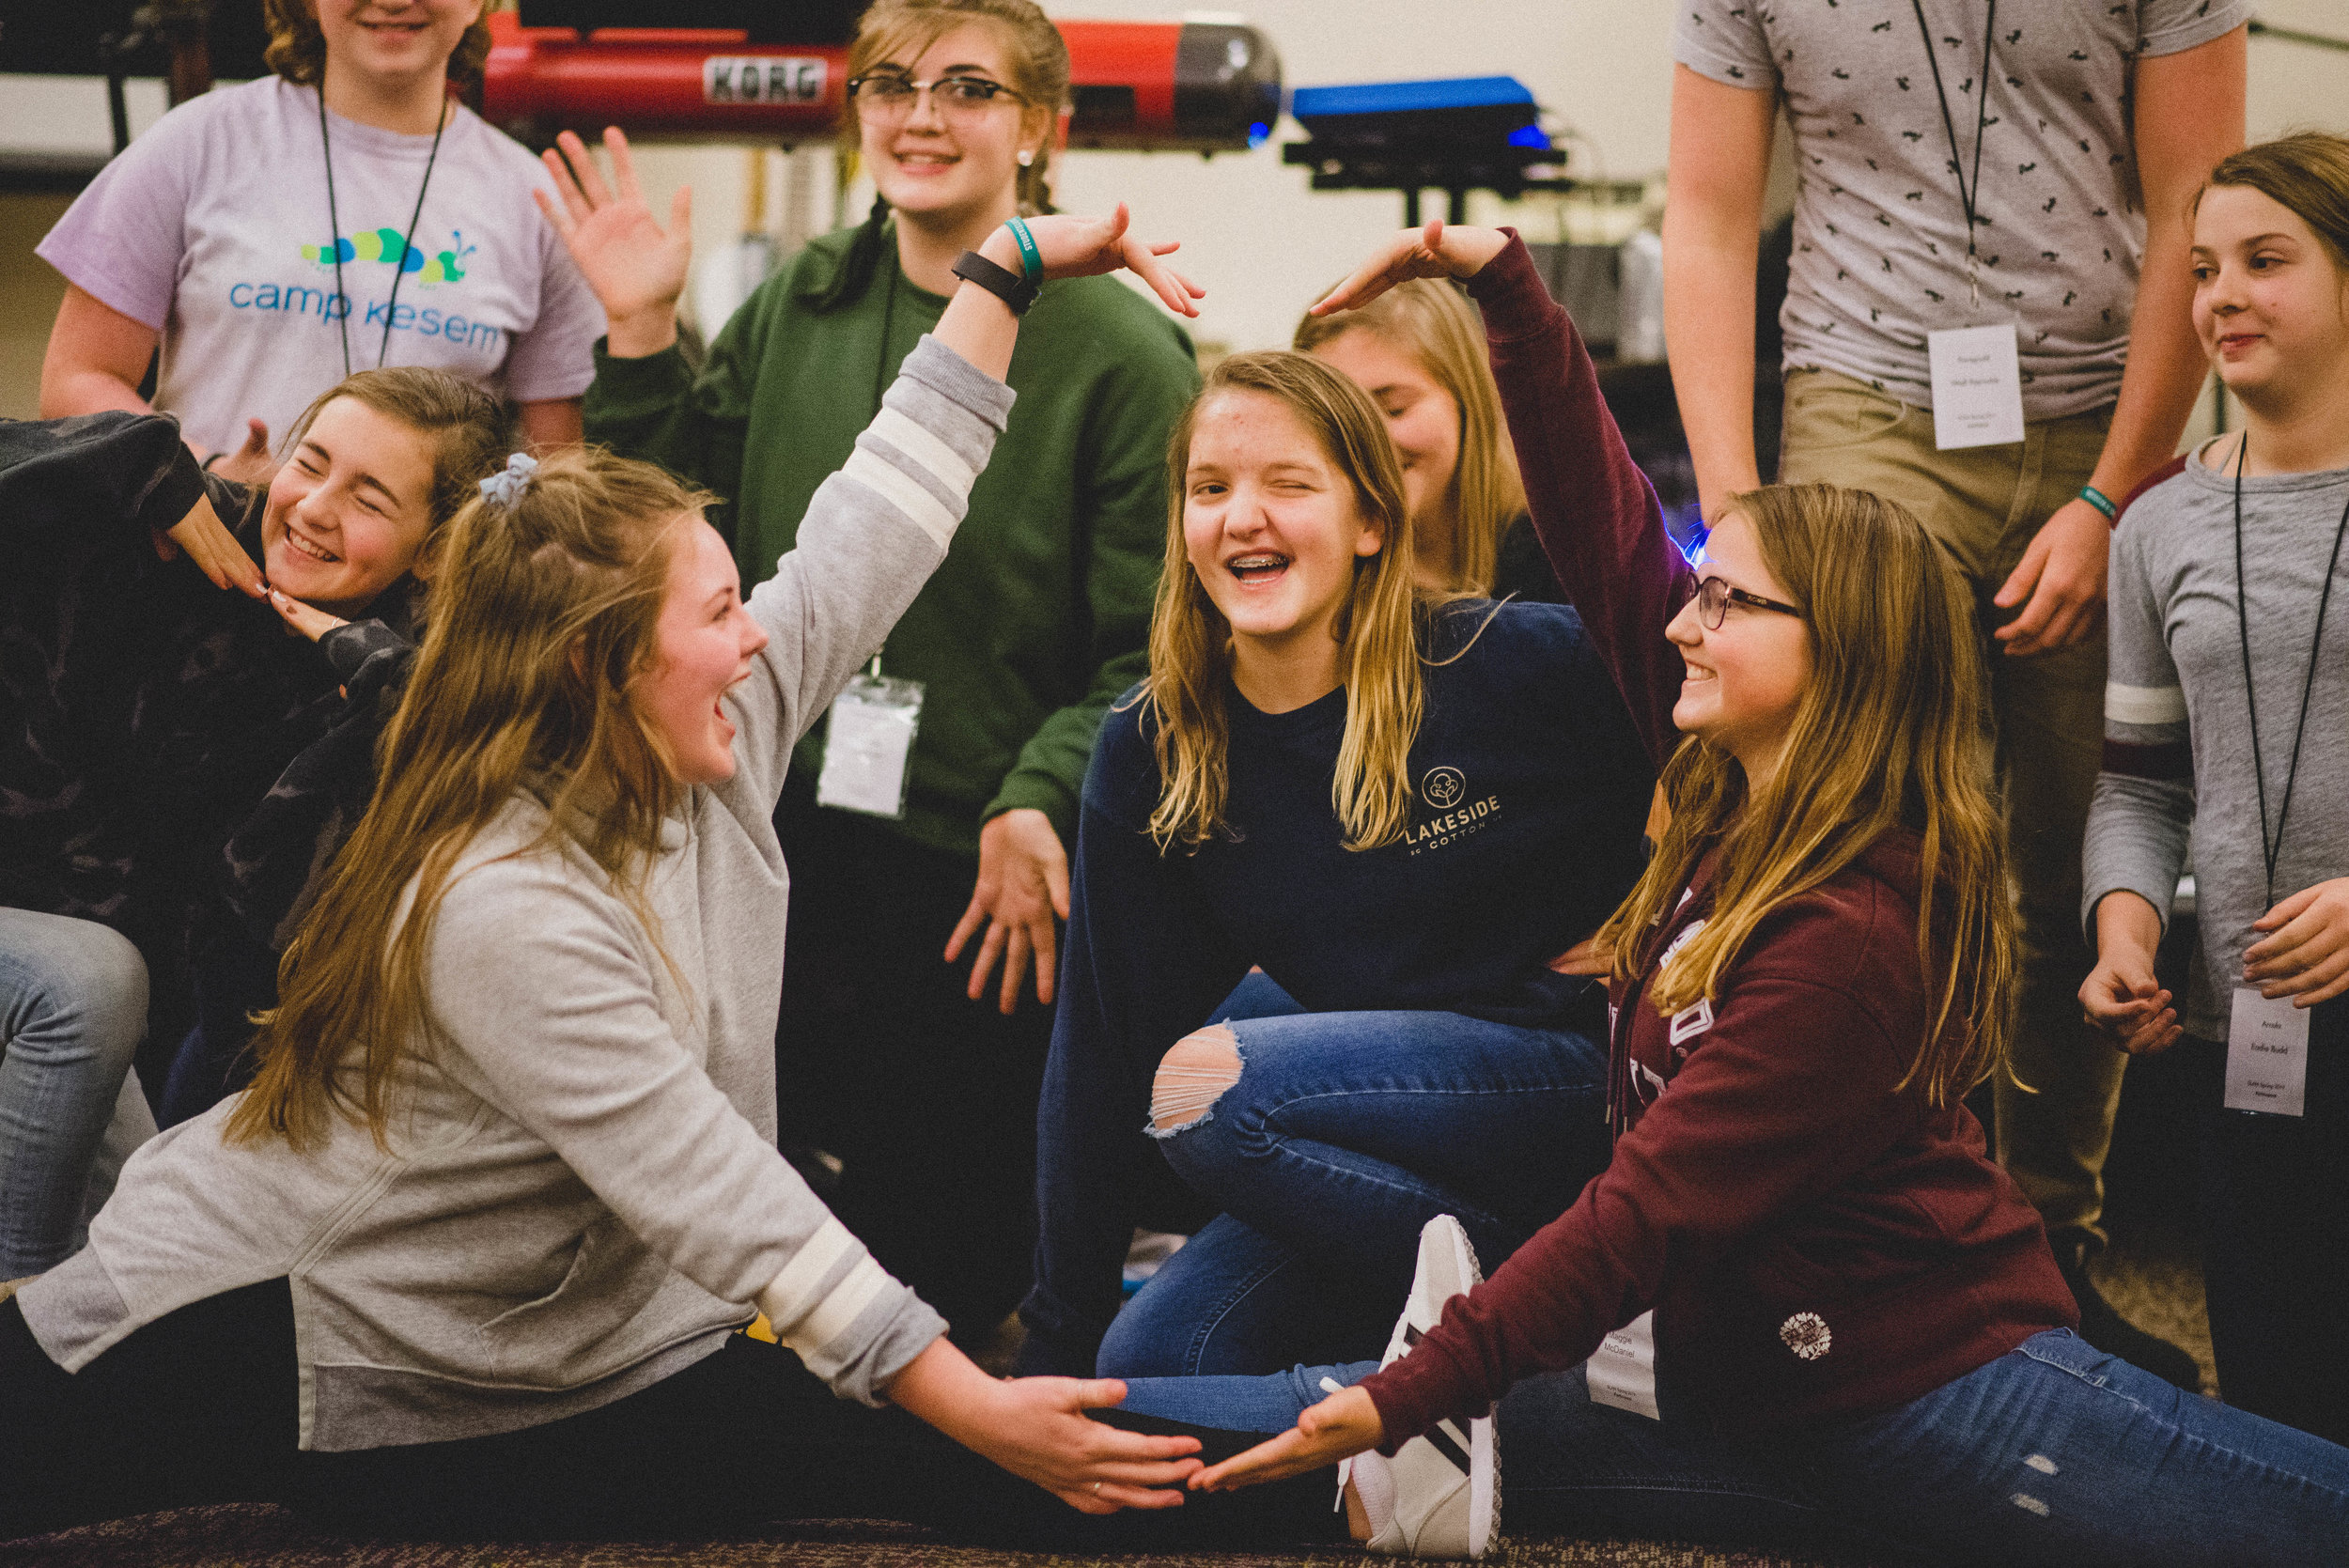 Though students were from three different states, new friendships were quickly formed when given the opportunity to sing, dance, and perform other creative arts together.